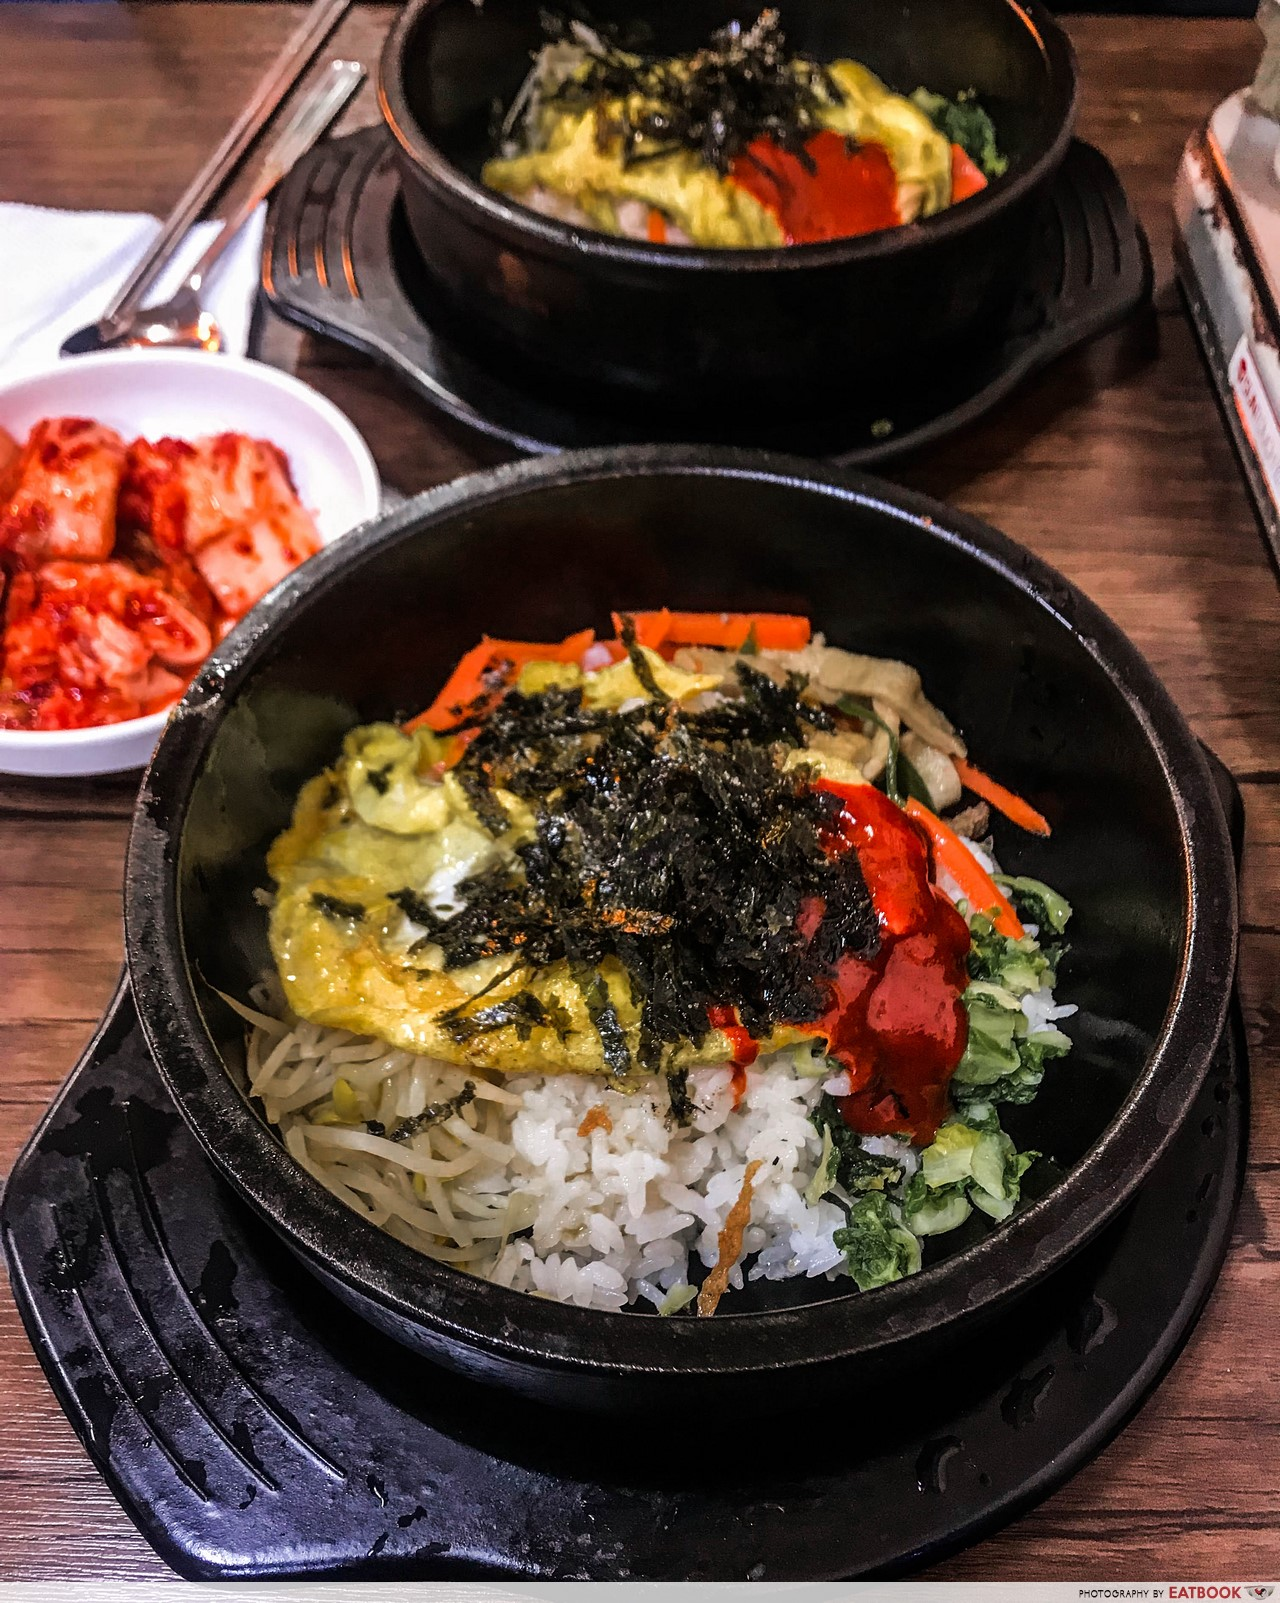 Halal Food places In Seoul - Busan Jib